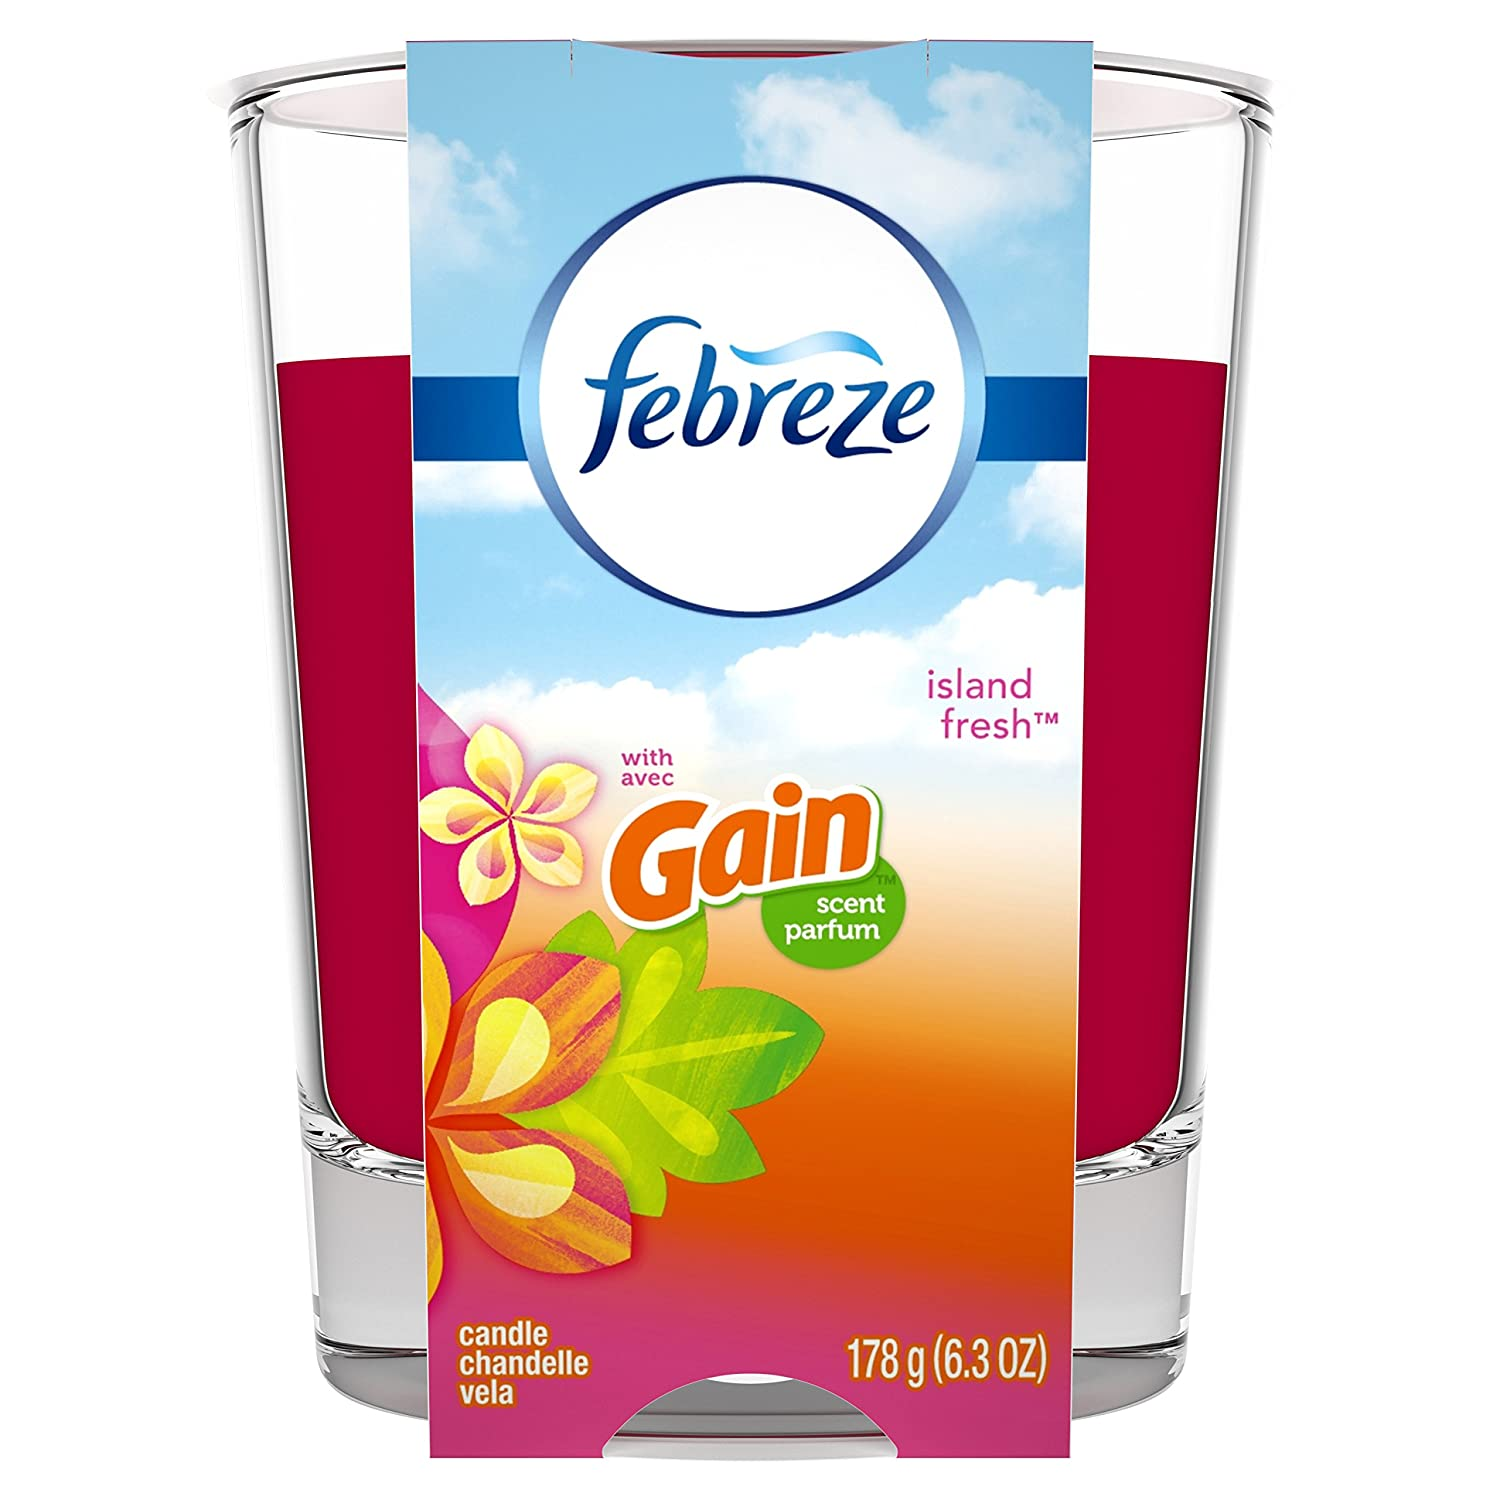 Febreze Candle Air Freshener, Linen & Sky, 1 count Procter and Gamble